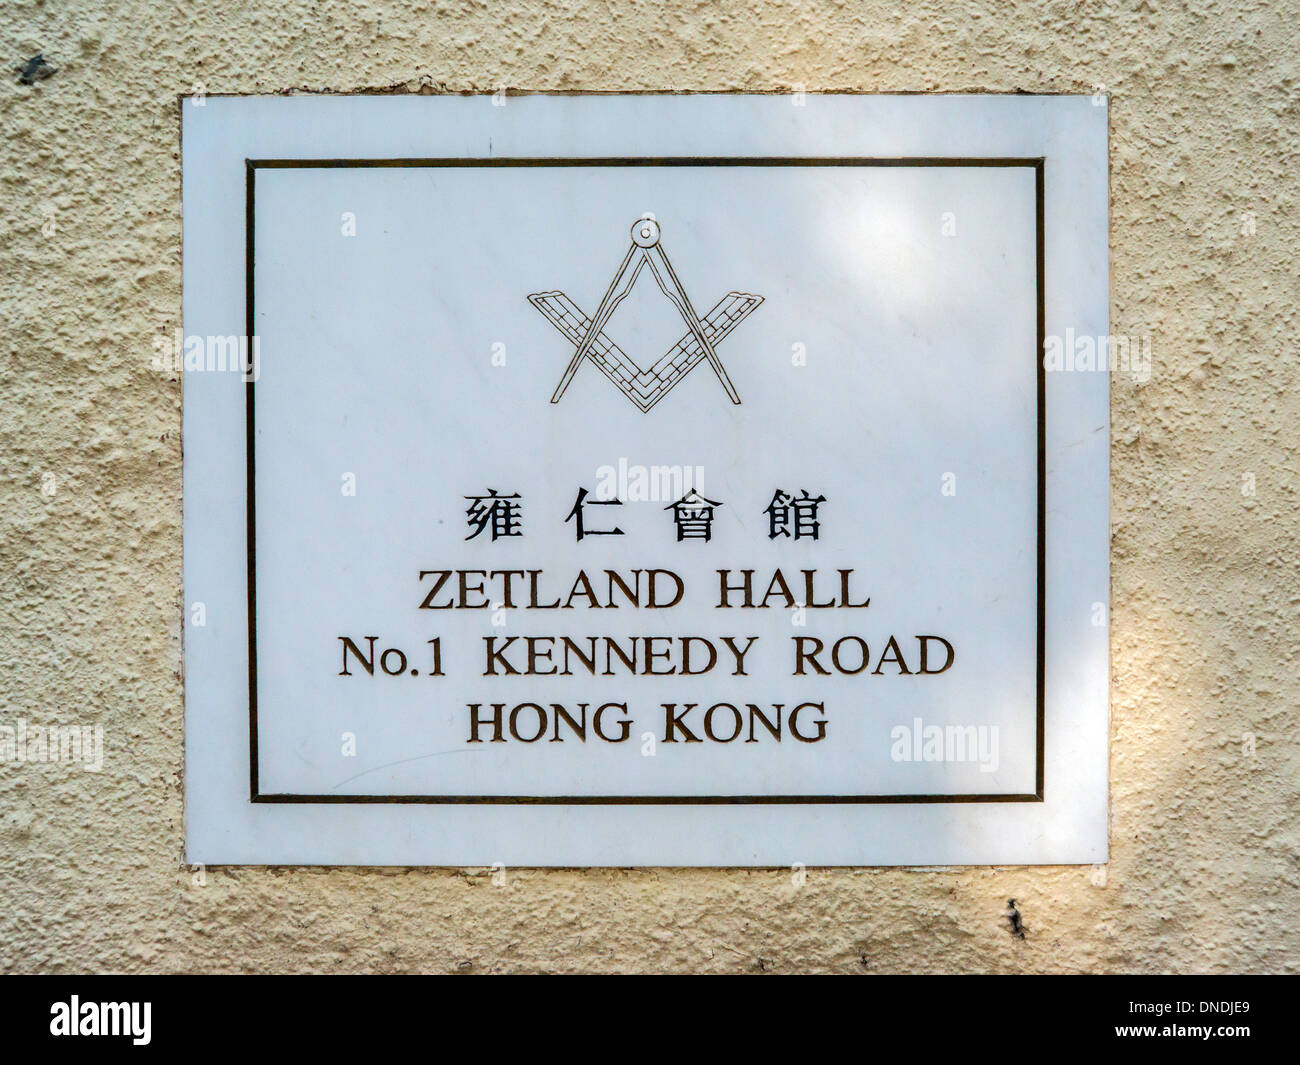 Image result for hong kong zetland st